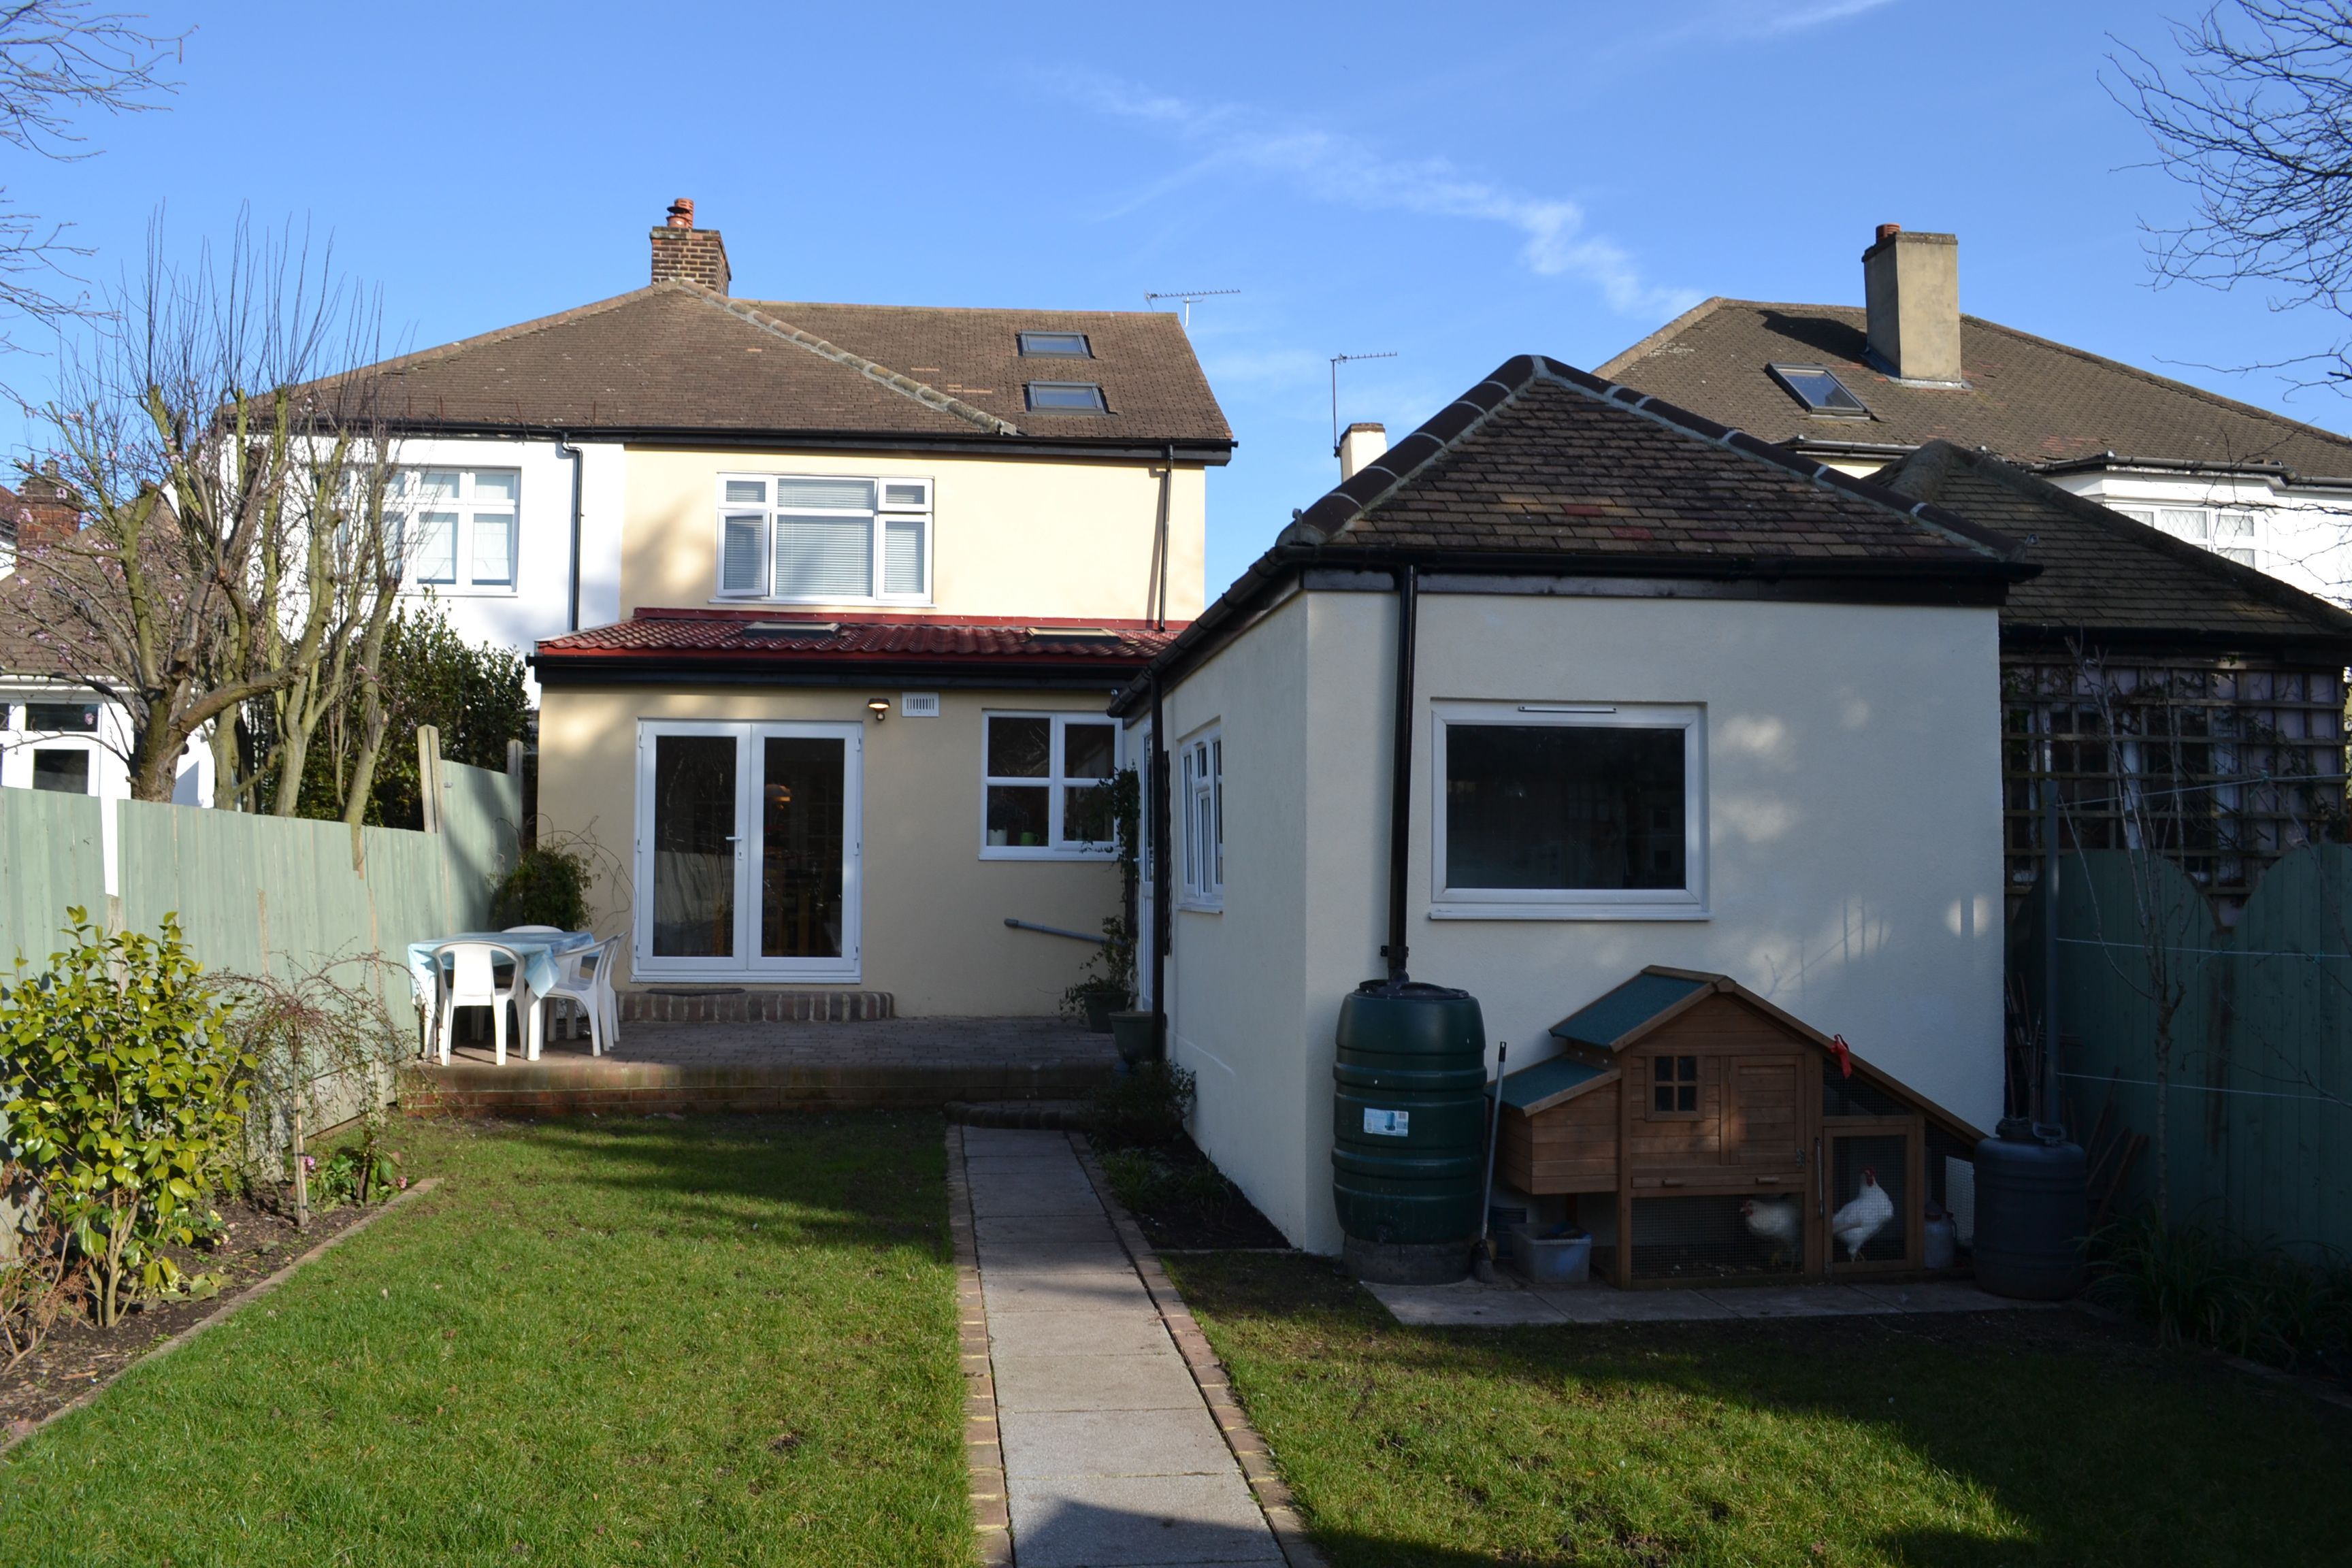 Houses to buy in chingford 28 images 2 bedroom houses to for Rural housing loan utah